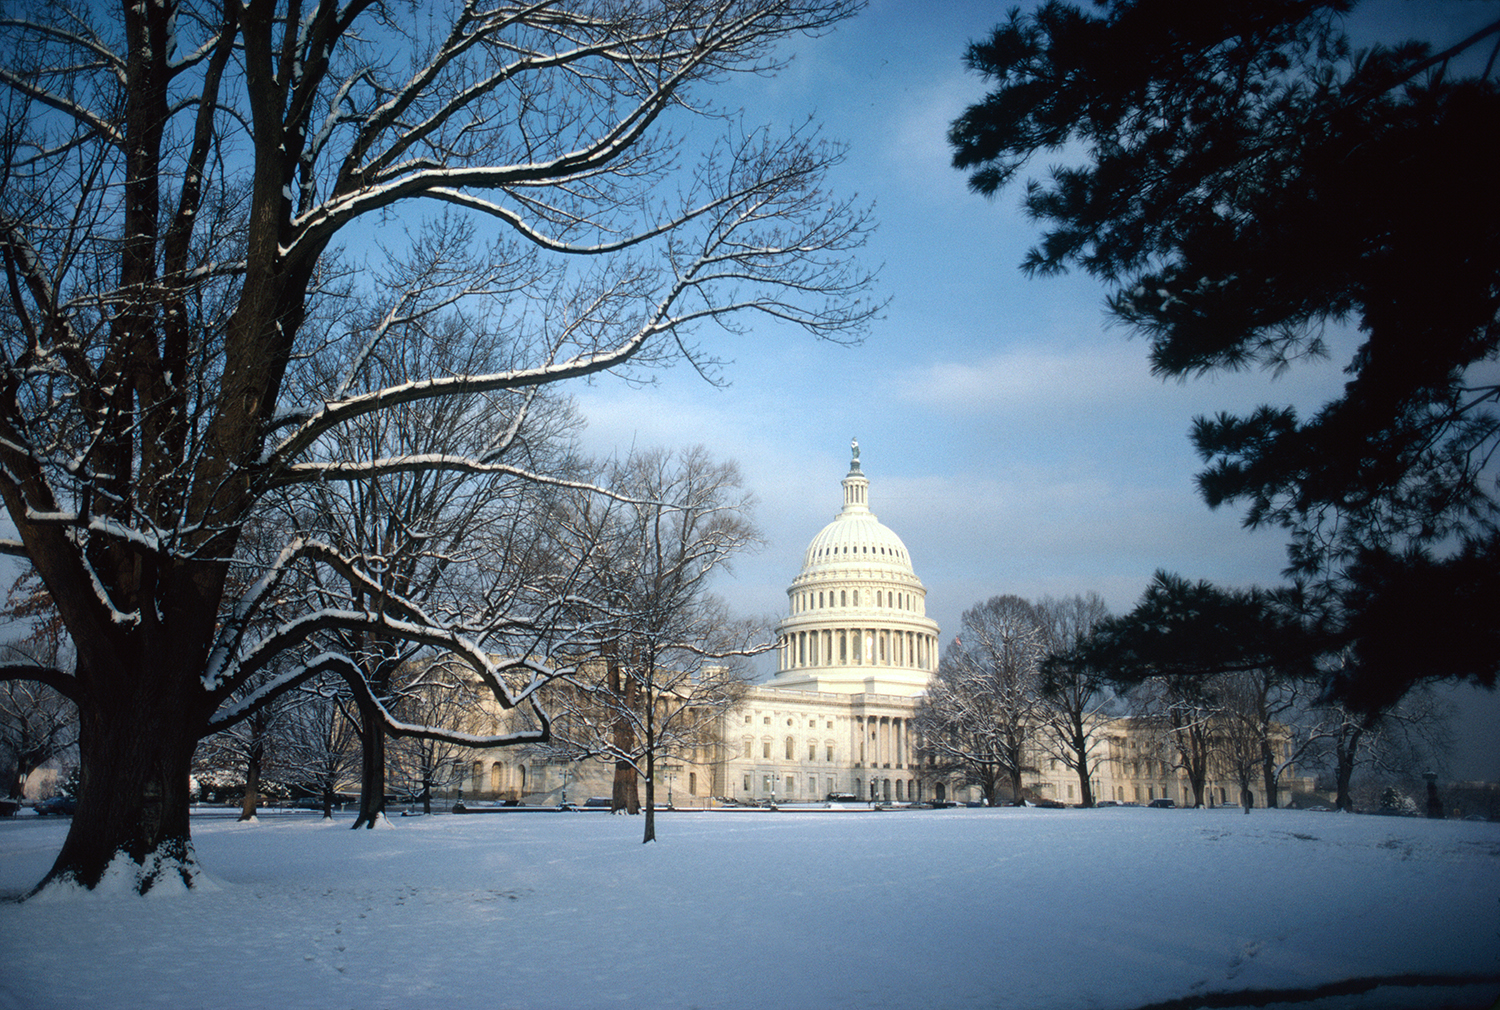 The Capitol in Snow